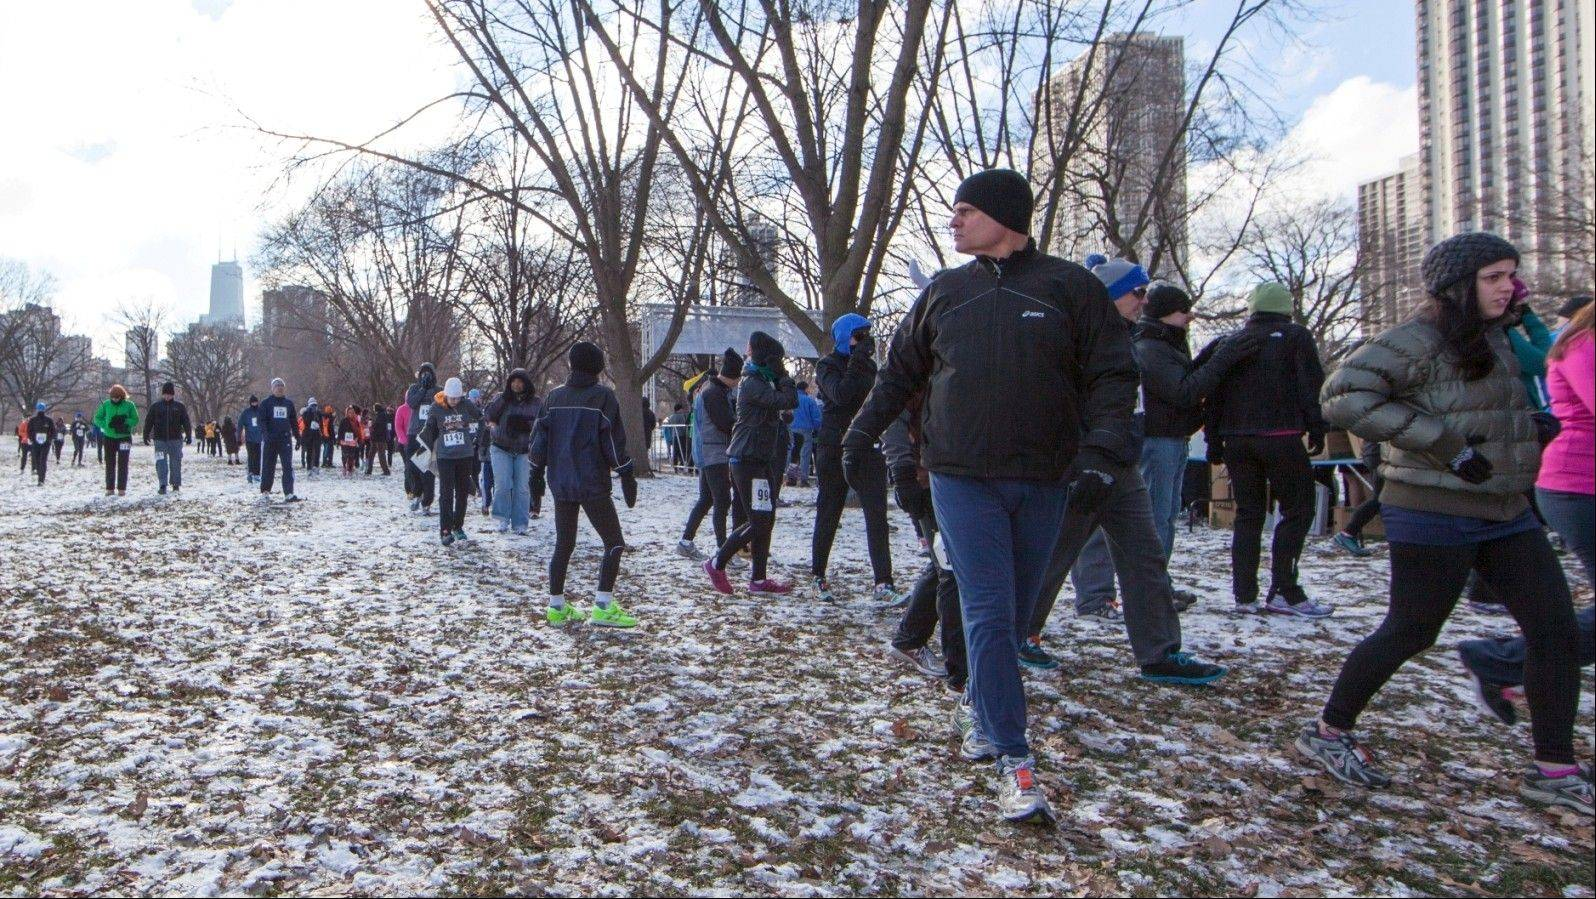 Chicago�s New Year�s Day 5K Run & Walk returns for its 29th year at 11 a.m. Wednesday, Jan. 1, at 1600 Stockton Drive at LaSalle Street, at the south end of Lincoln Park.